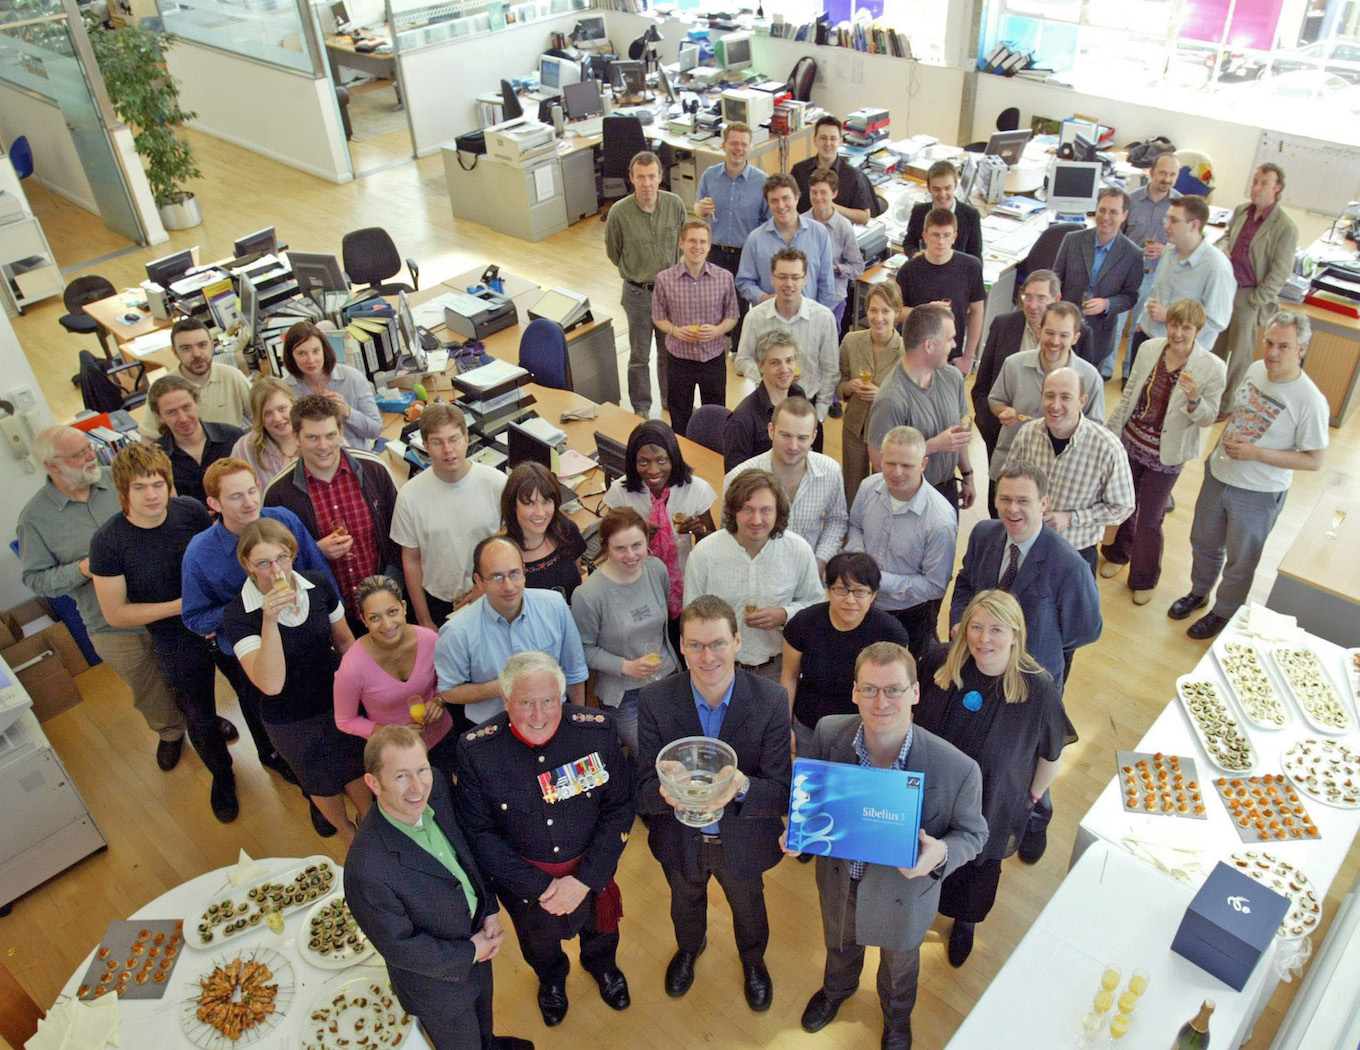 Sibelius staff in 2005 after receiving The Queen's Award for Enterprise